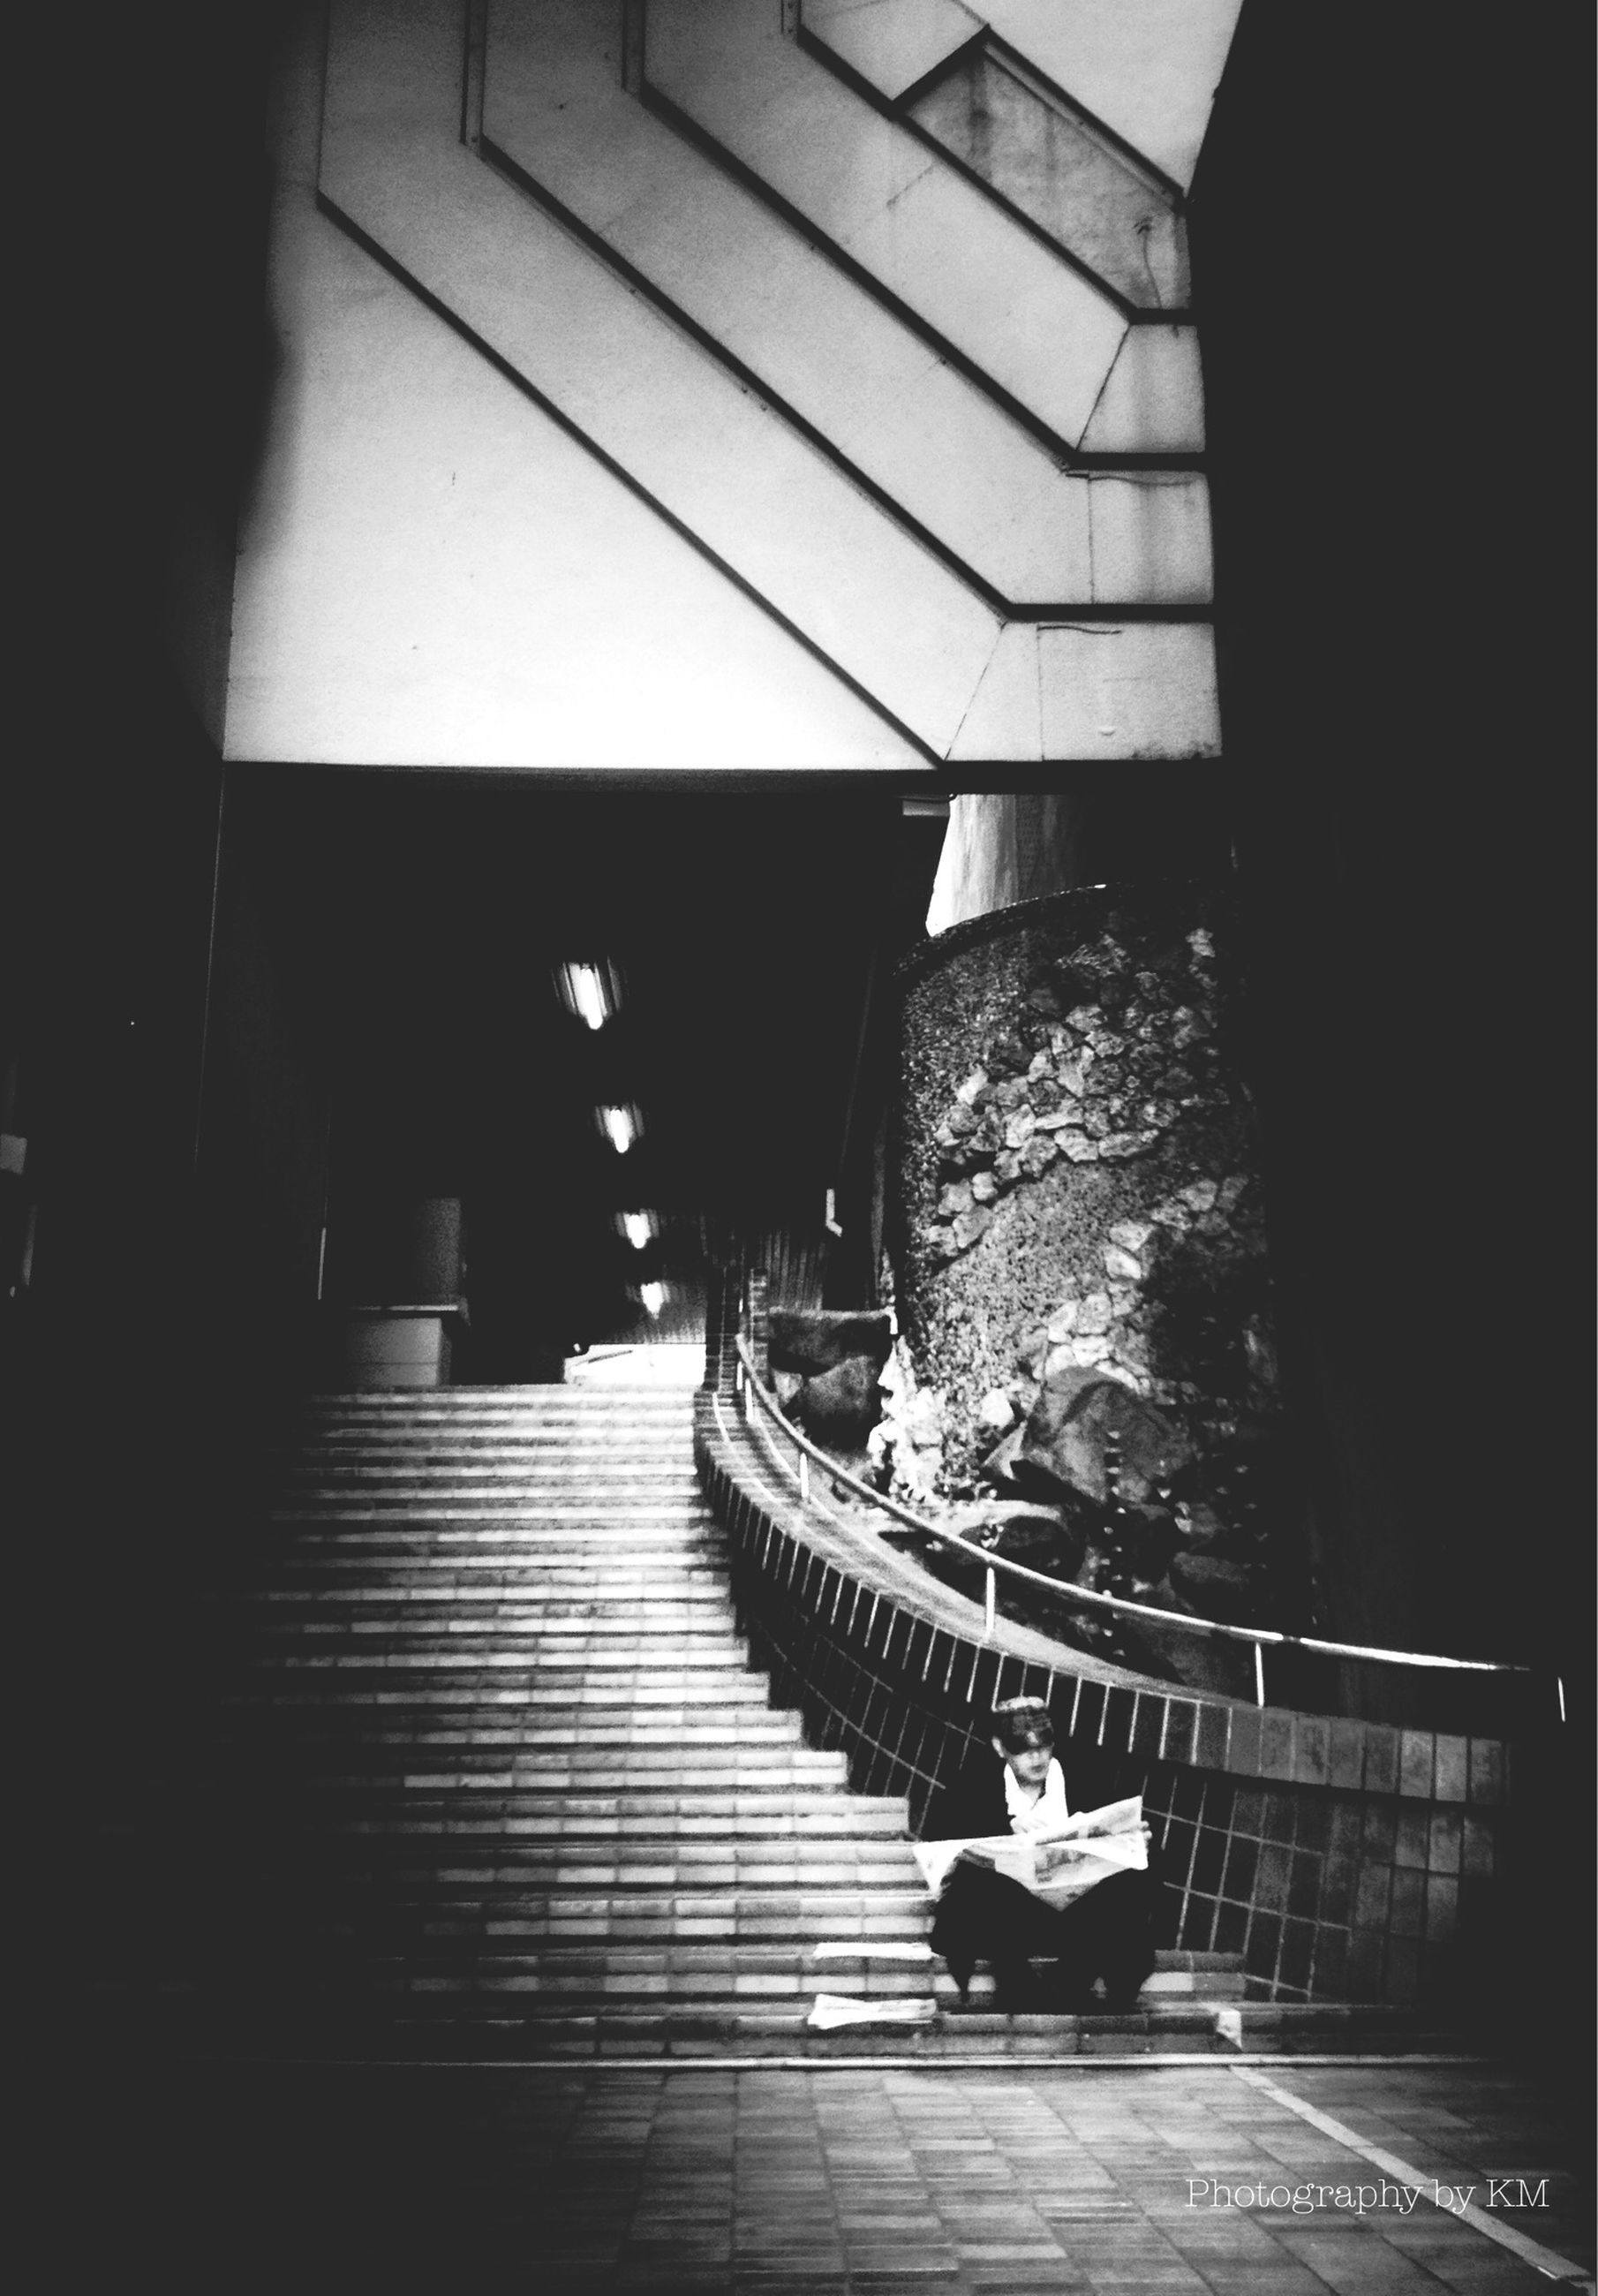 architecture, built structure, steps, full length, men, steps and staircases, walking, lifestyles, building exterior, staircase, person, indoors, high angle view, the way forward, railing, rear view, night